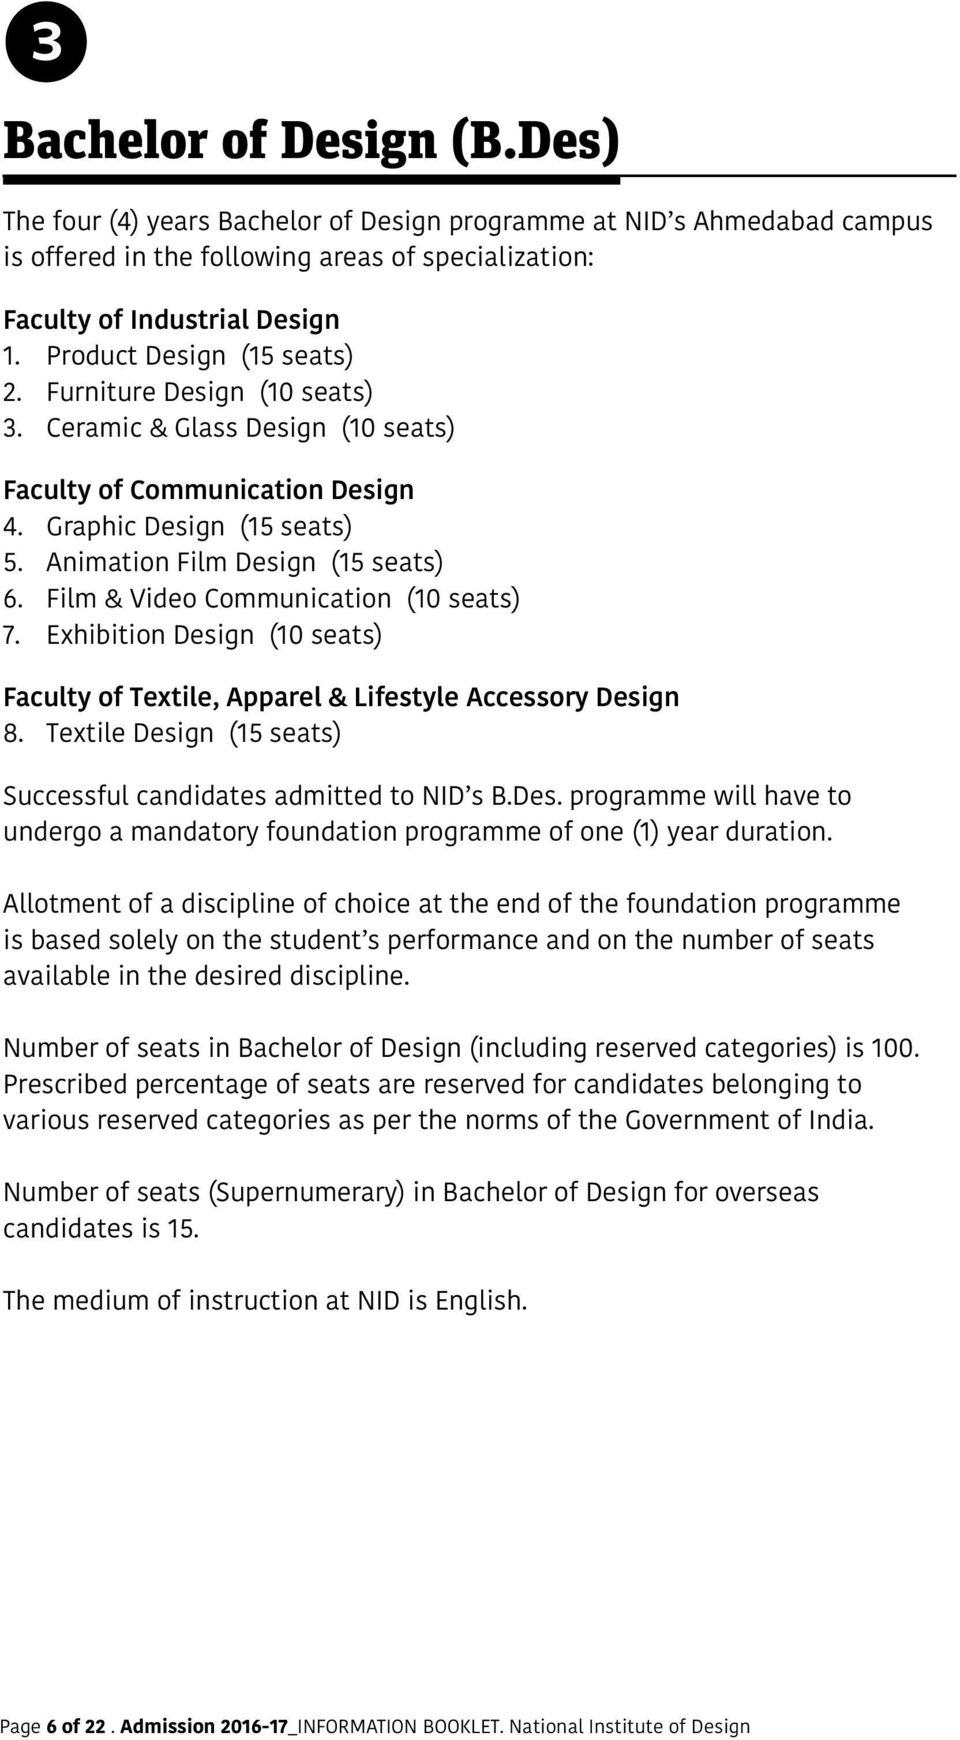 Film & Video Communication (10 seats) 7. Exhibition Design (10 seats) Faculty of Textile, Apparel & Lifestyle Accessory Design 8. Textile Design ( seats) Successful candidates admitted to NID s B.Des. programme will have to undergo a mandatory foundation programme of one (1) year duration.